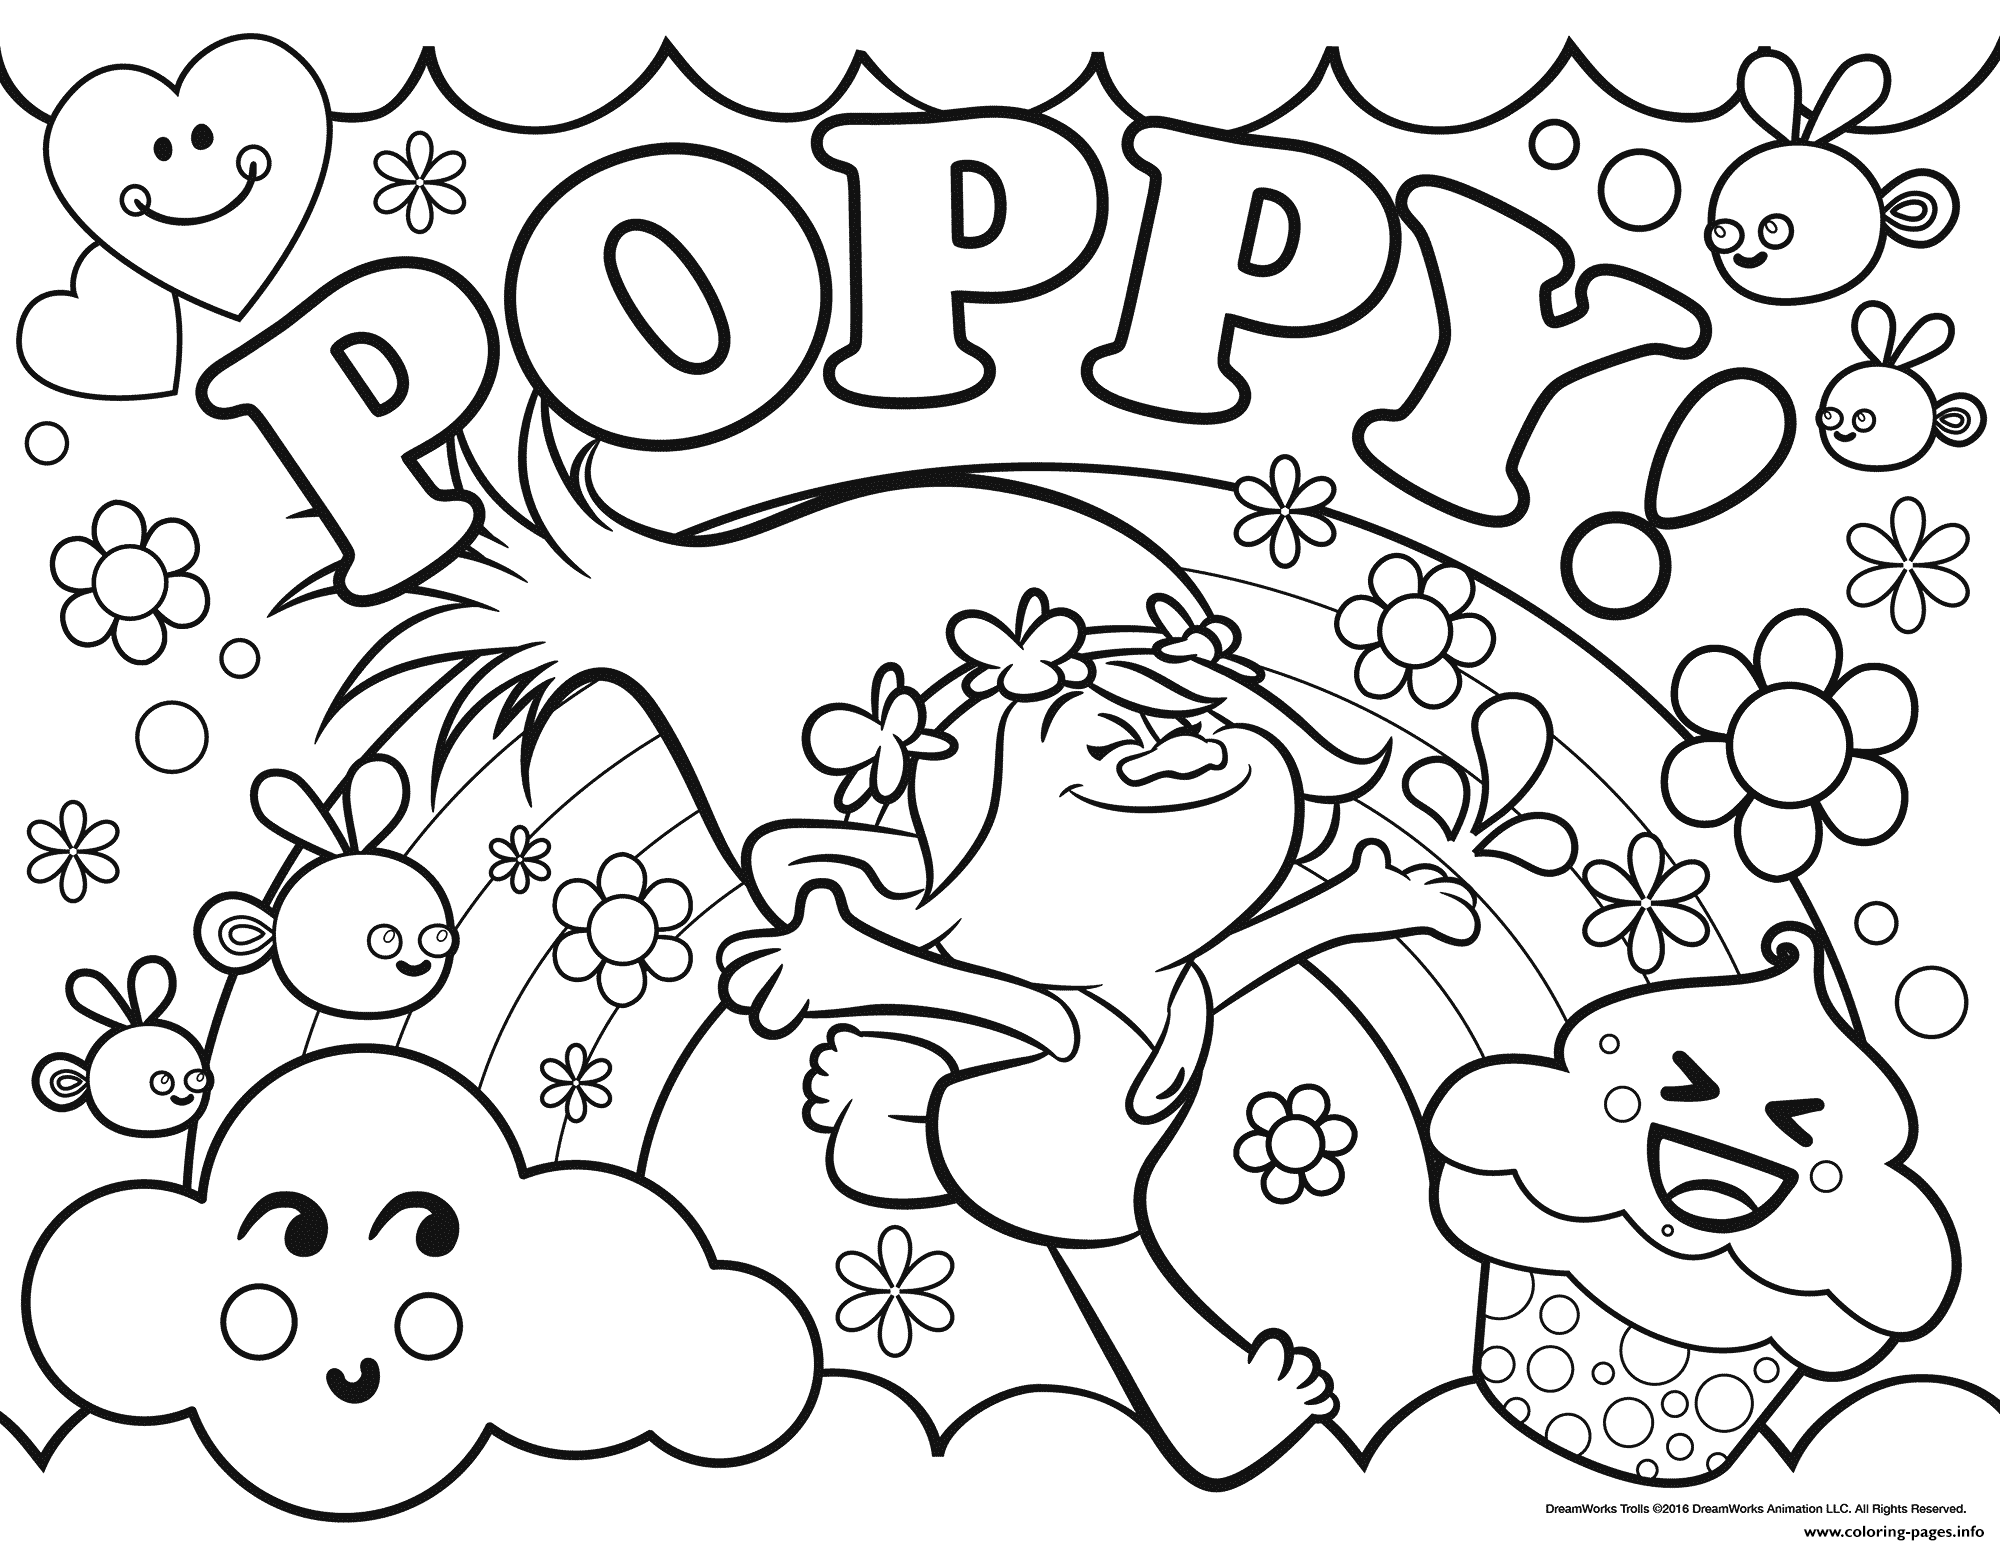 photograph regarding Trolls Printable Coloring Pages titled Print Trolls Poppy coloring internet pages Coloration Year Poppy